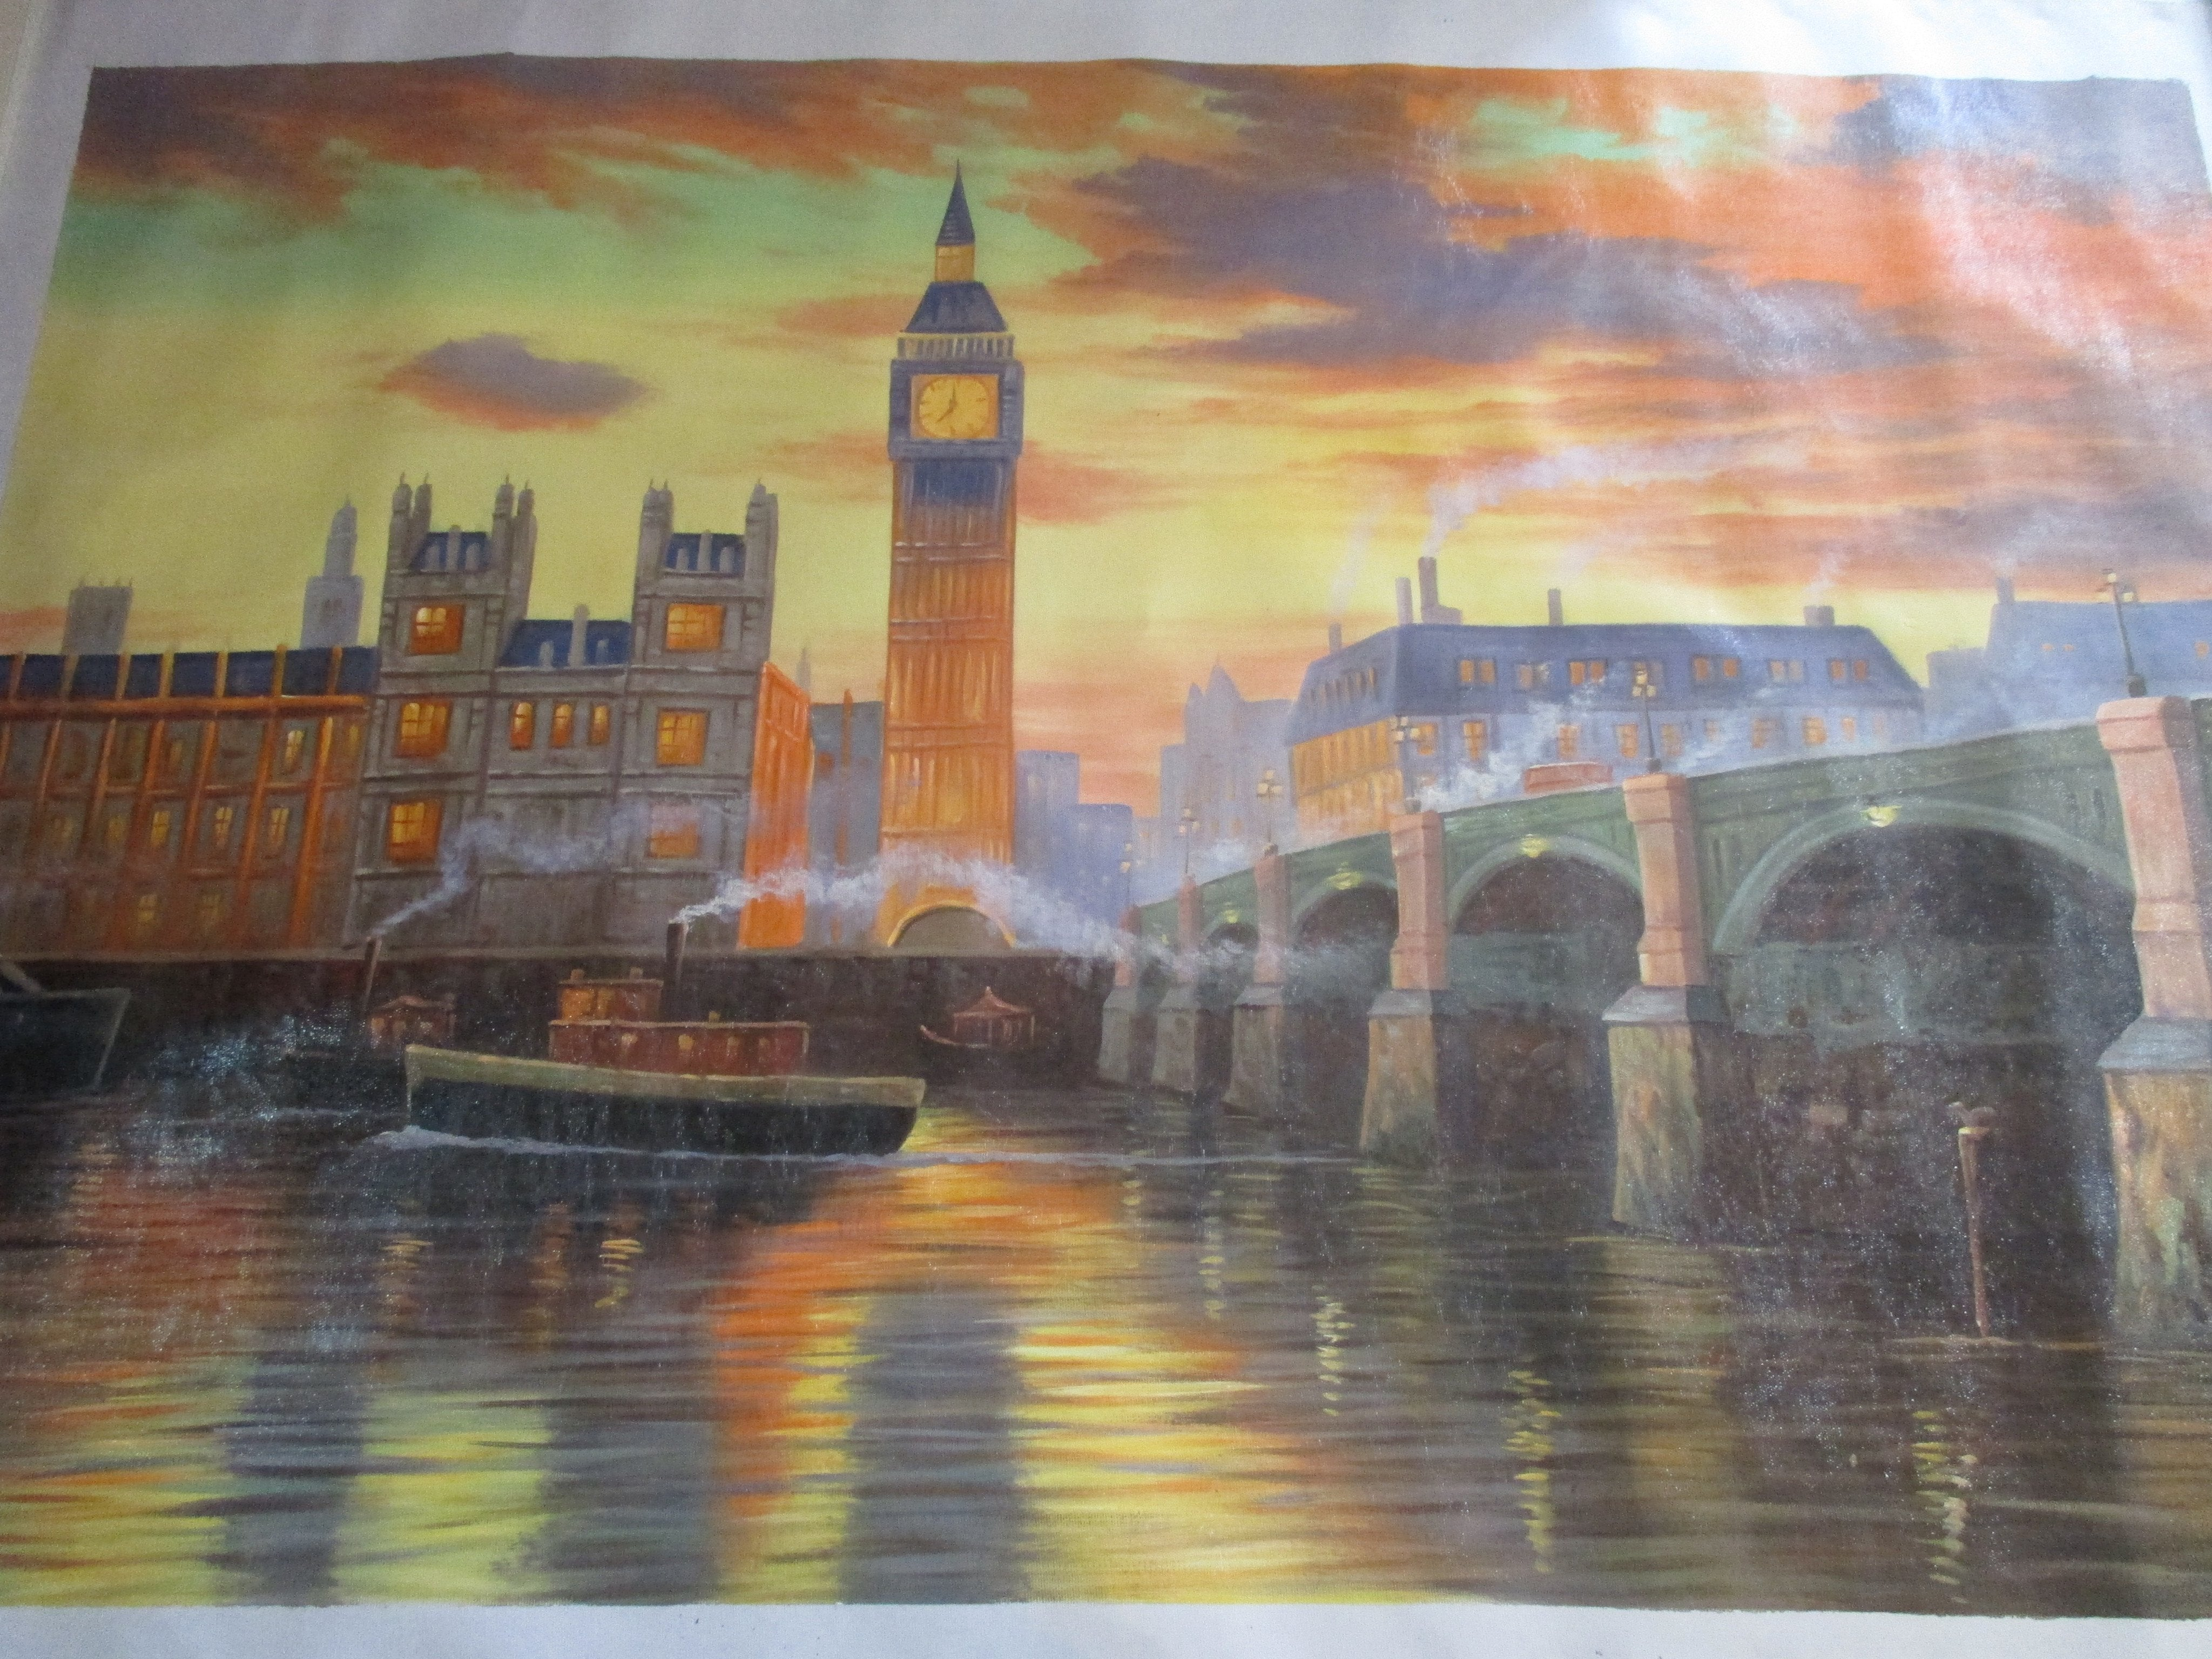 LARGE OIL PAINTING OF THE RIVER THAMES AND BIG BEN LONDON UNFRAMED - London Art and Souvenirs